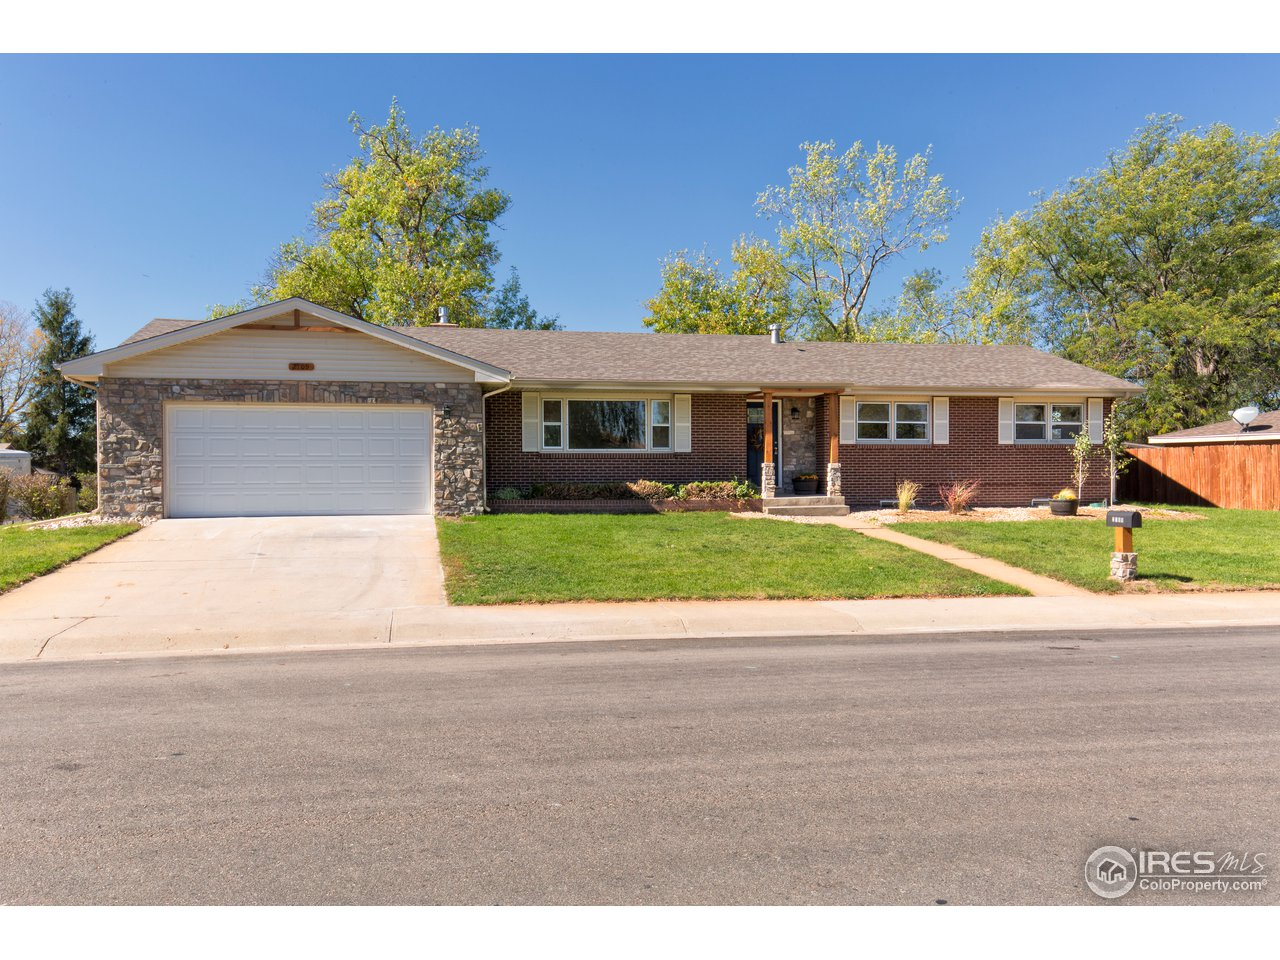 OPEN HOUSE Sun 11/18  from 2:30 pm to 4:30 pm Fabulous 6 Bedroom 3 Bathroom Remodel!  All Brick  2935 sq feet located on a corner lot in Cascade Park.  Remodel Includes; Fresh Paint, New Carpeting, Granite, Kitchen flooring and appliances, Bathroom sinks, fixtures, tile, finished oak flooring AND MORE!  Exterior updating with New Roof, Stone work and Cedar trim, and fresh landscape!  CALL ME TO SEE HOW YOU CAN RENT TO OWN THIS HOME!